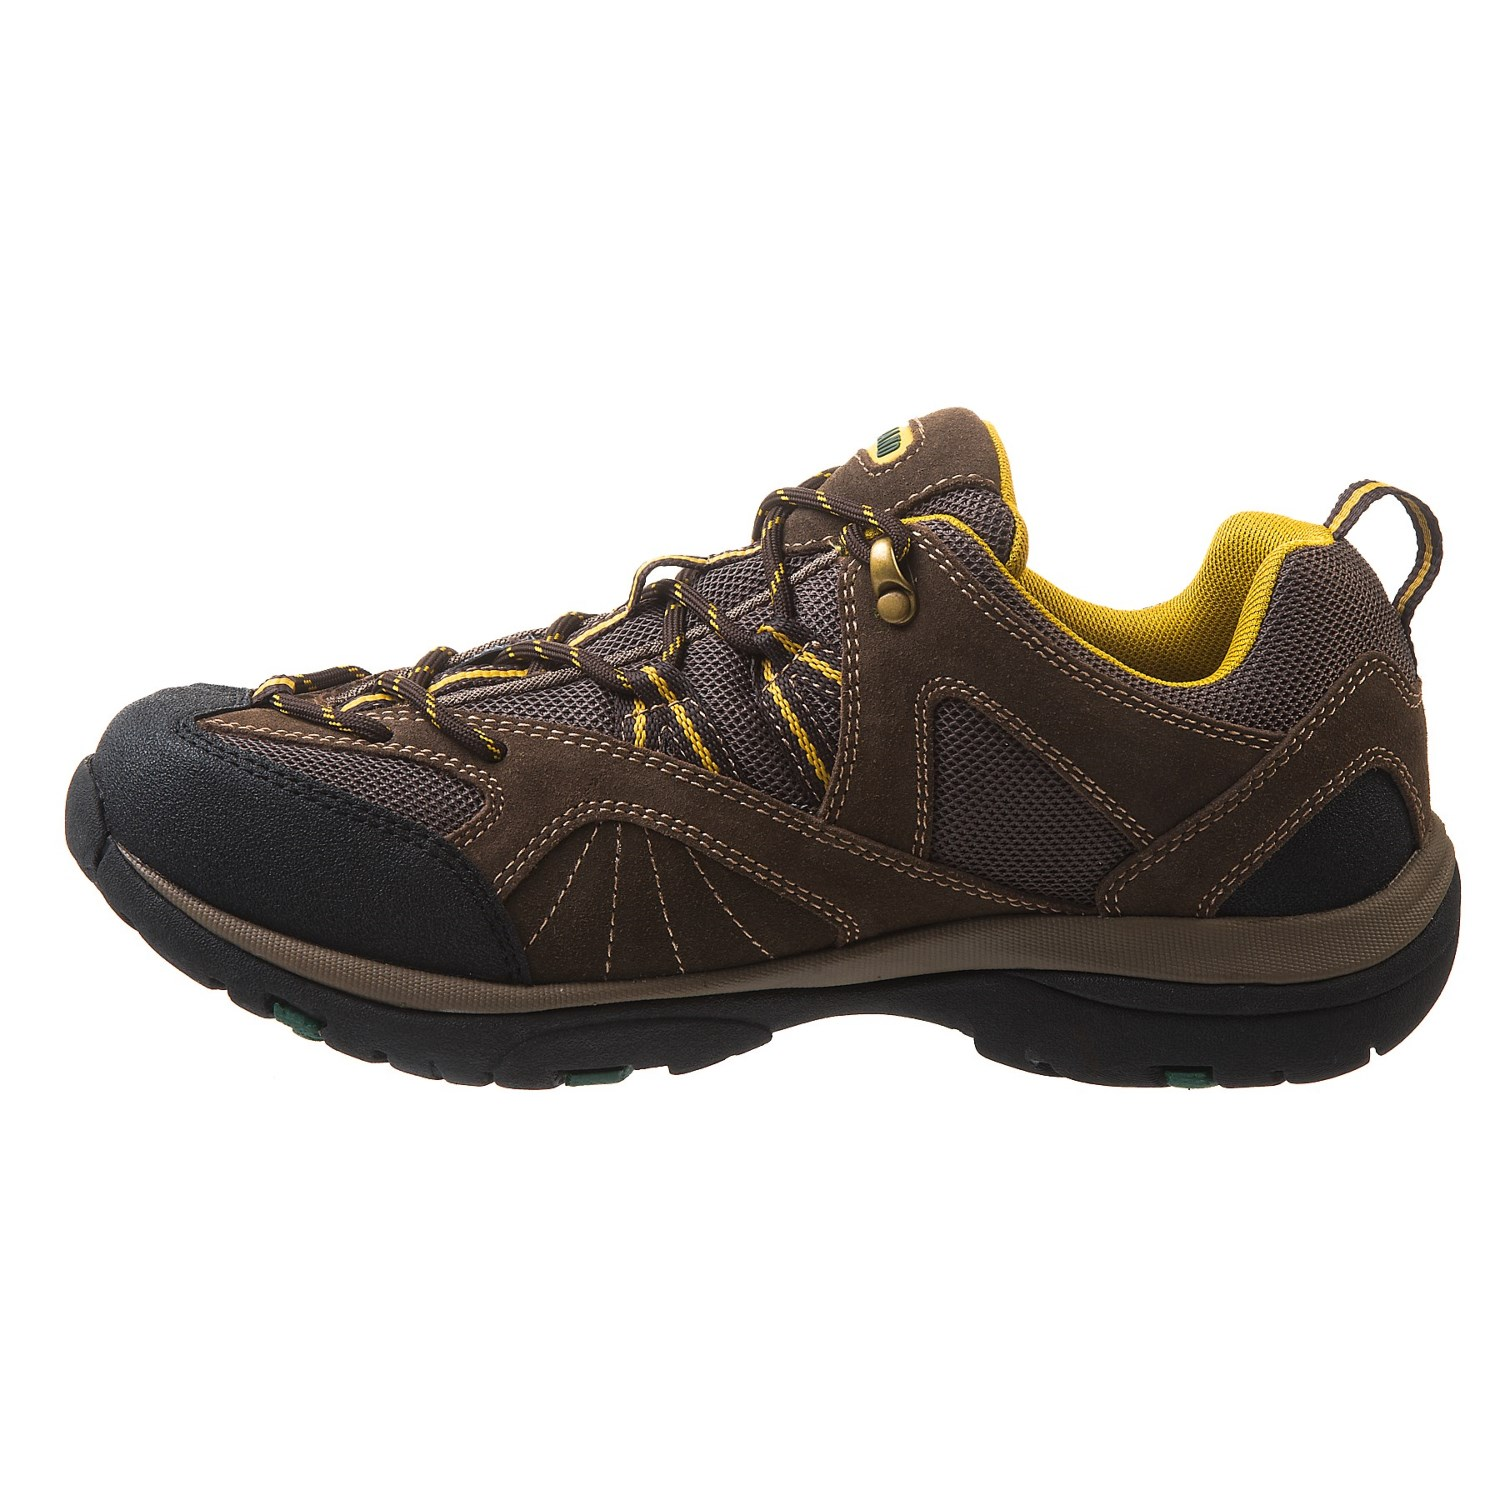 Eastland Olympus Hiking Shoes Suede For Men